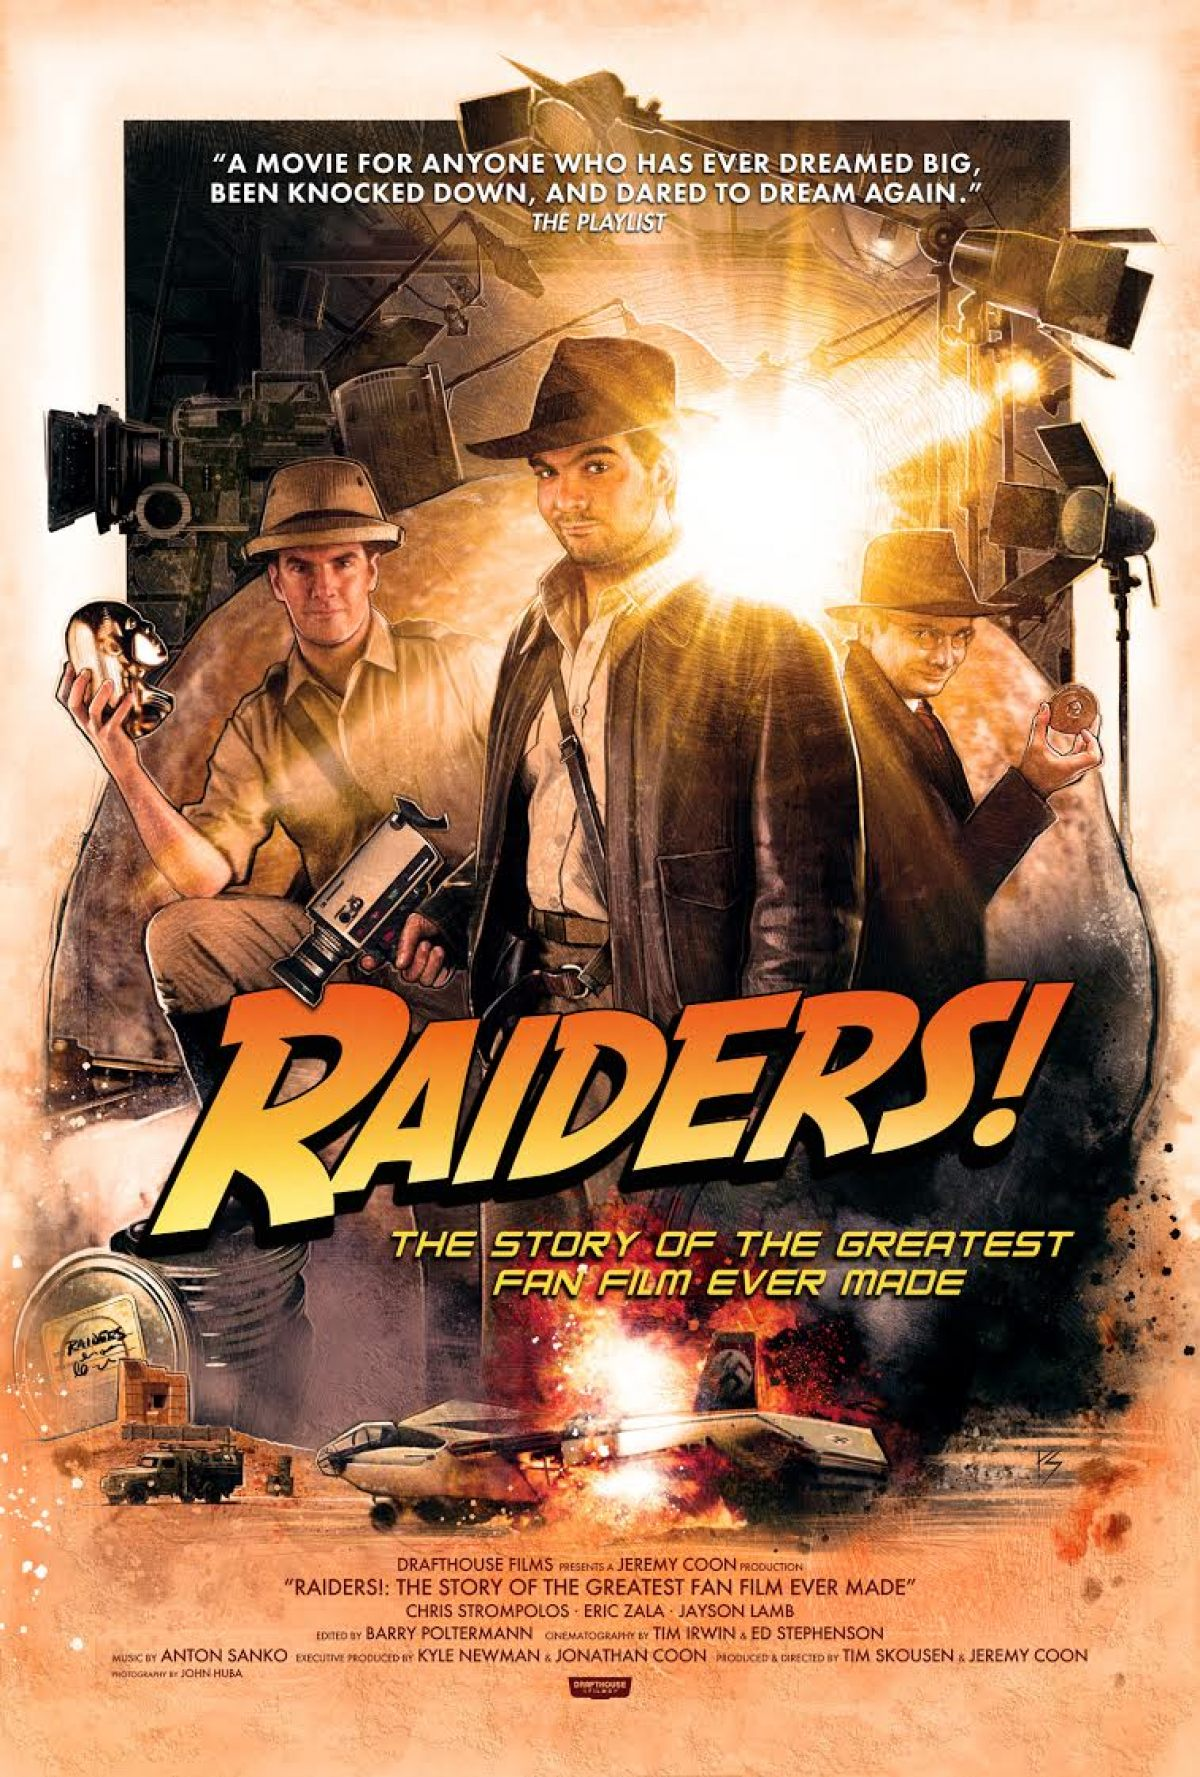 Raiders! The Story of the Greatest Fan Film Ever Made